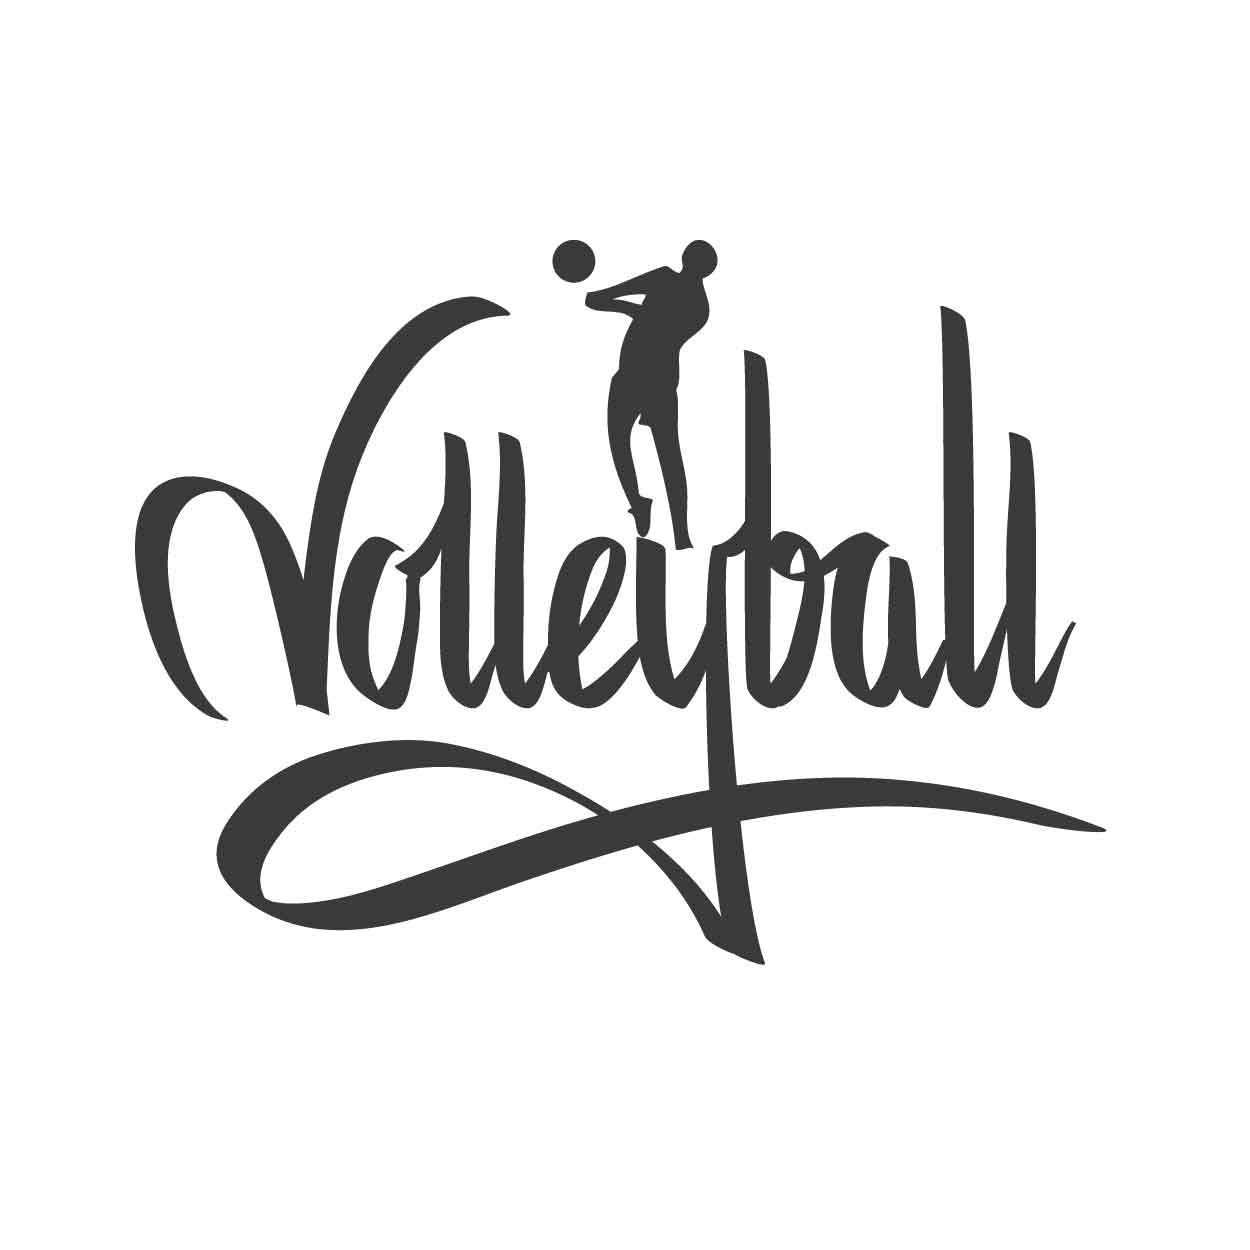 Upcoming Events Warriors Volleyball Meeting Headwaters Covenant Church Volleyball Quotes Volleyball Shirts Volleyball Designs